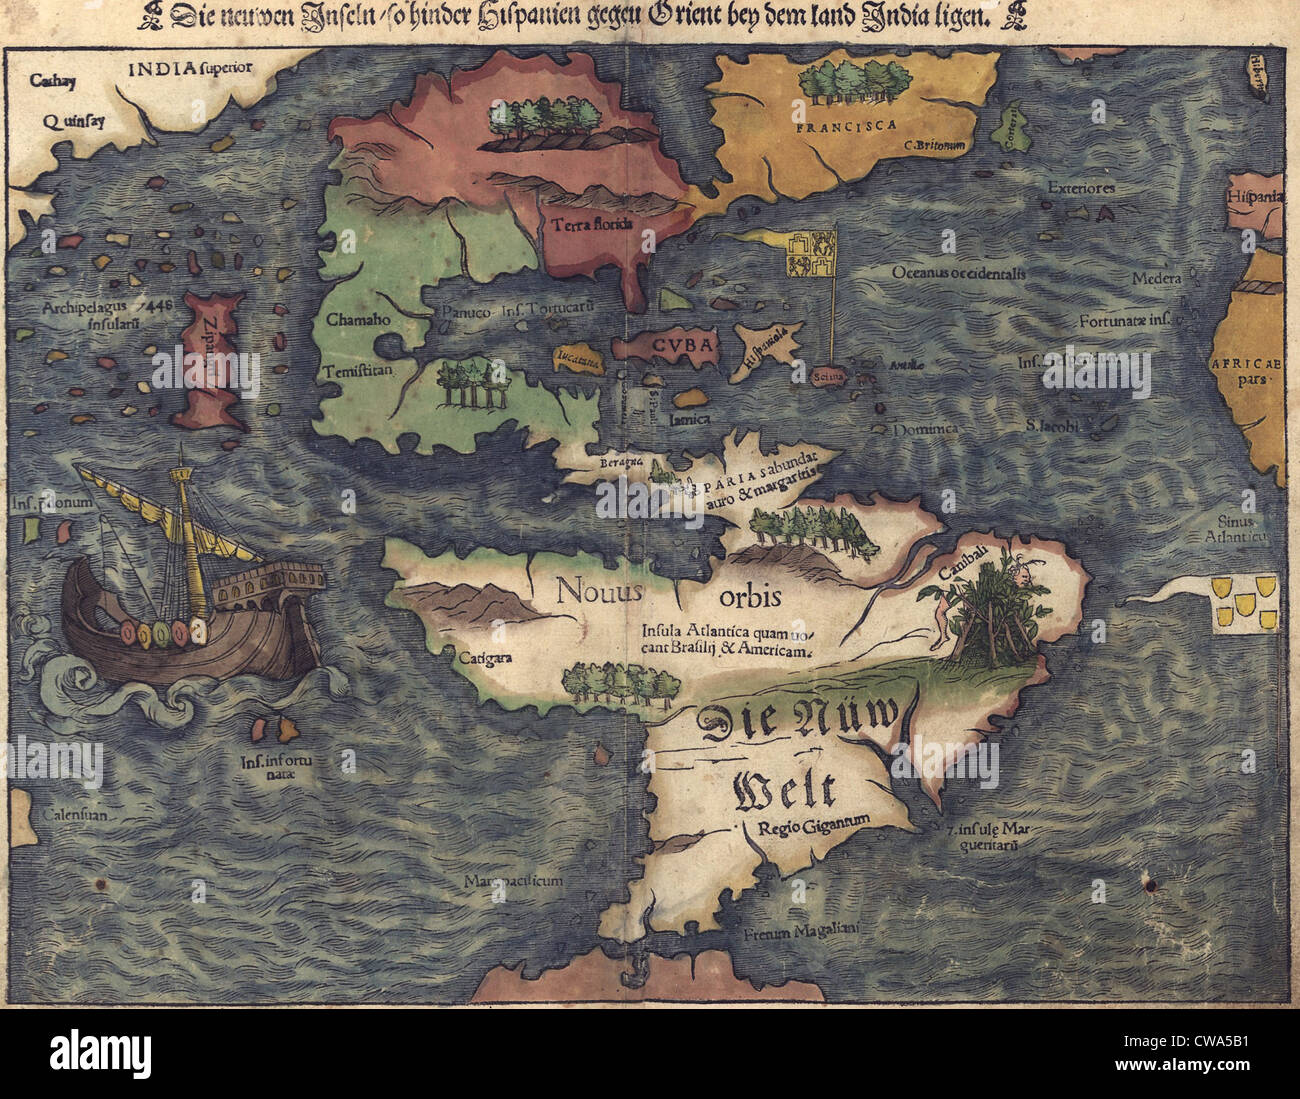 1550 Swiss map of newly discovered Western Hemisphere. The Caribbean Sea is disproportionately large, most of North - Stock Image